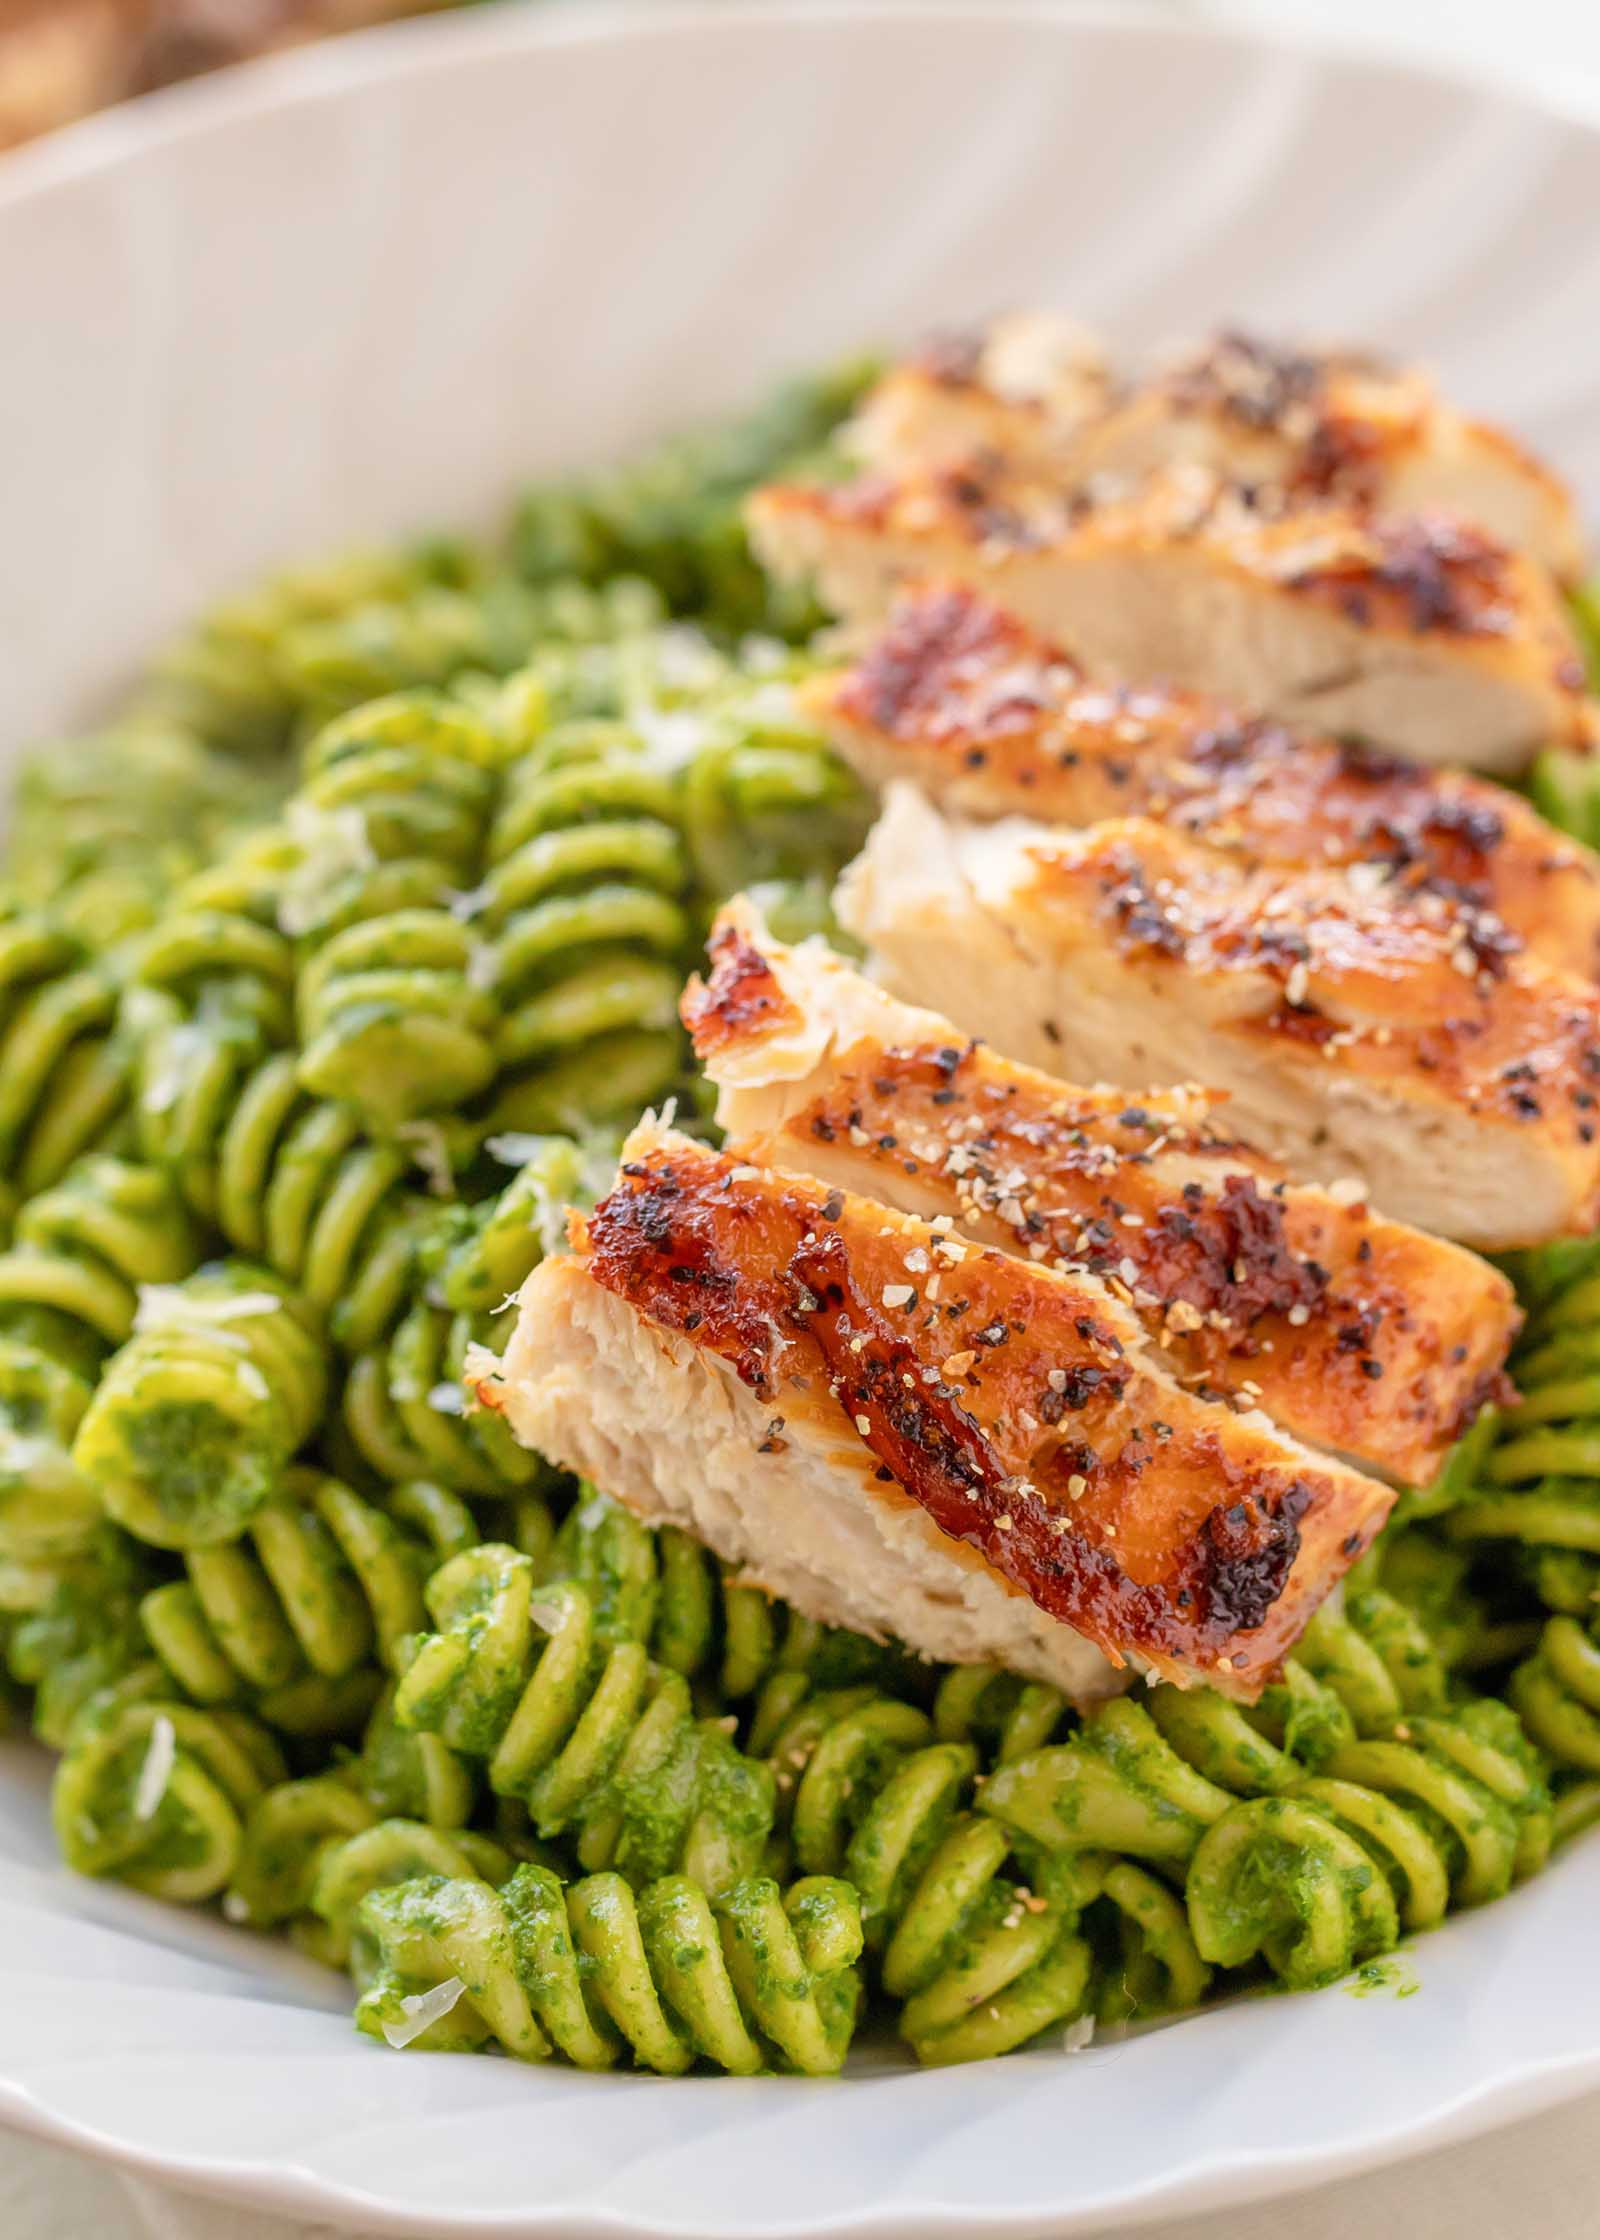 Close up view of easy rotini kale pesto in a white bowl. Roasted chicken breast is sliced and laid on the right side.